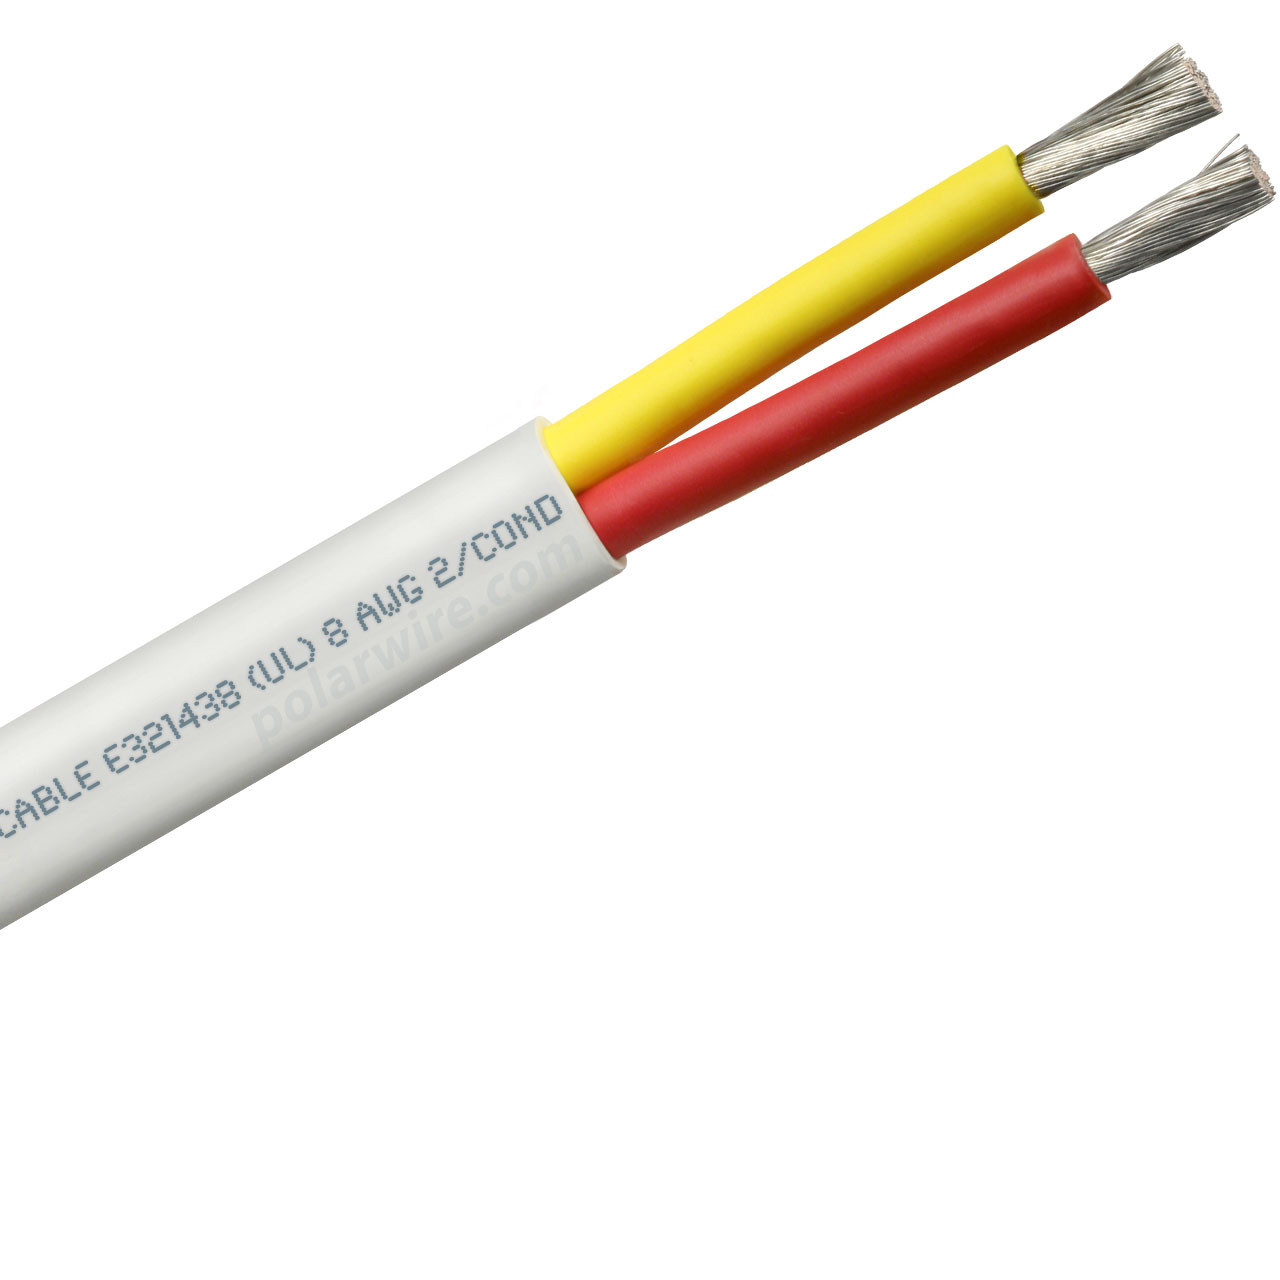 8 AWG flat yellow and red safety dc duplex marine grade tinned copper bc5w2 boat cable features ultra flexible Class K fine copper stranding for flexibility and conductivity, exceeds ABYC standards, UL Listed, CSA Certified